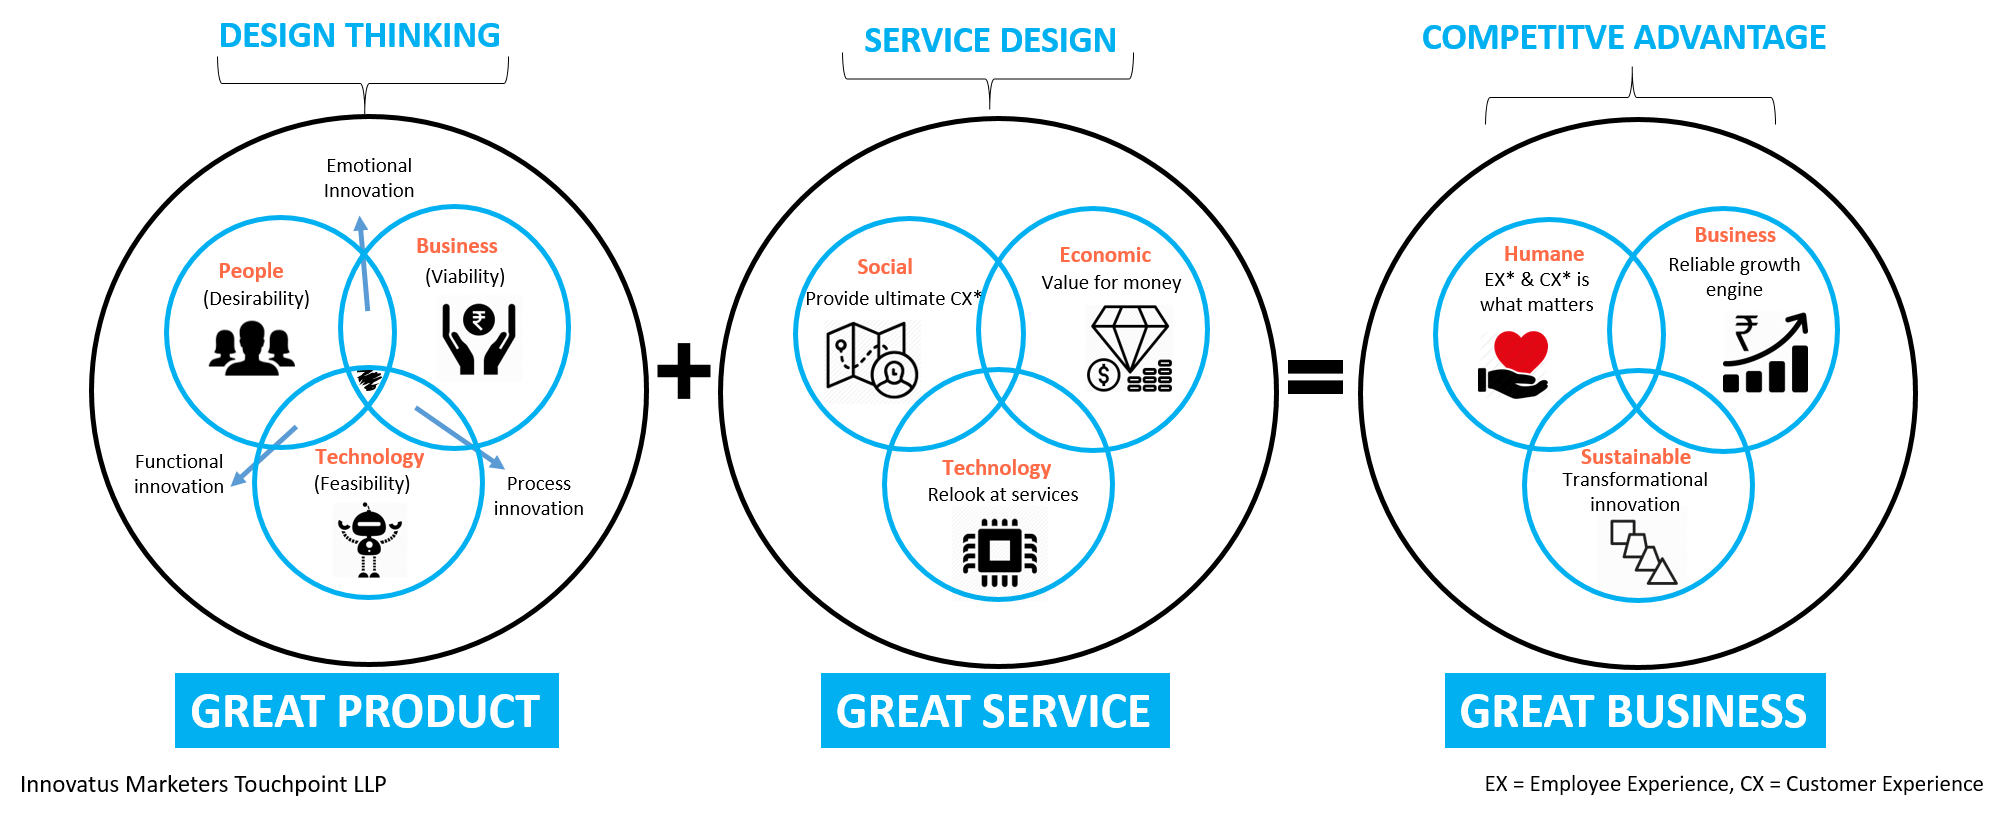 What Is The Difference Between Design Thinking And Service Engine Diagram To Succeed Survive Accomplish This Transformation You Need